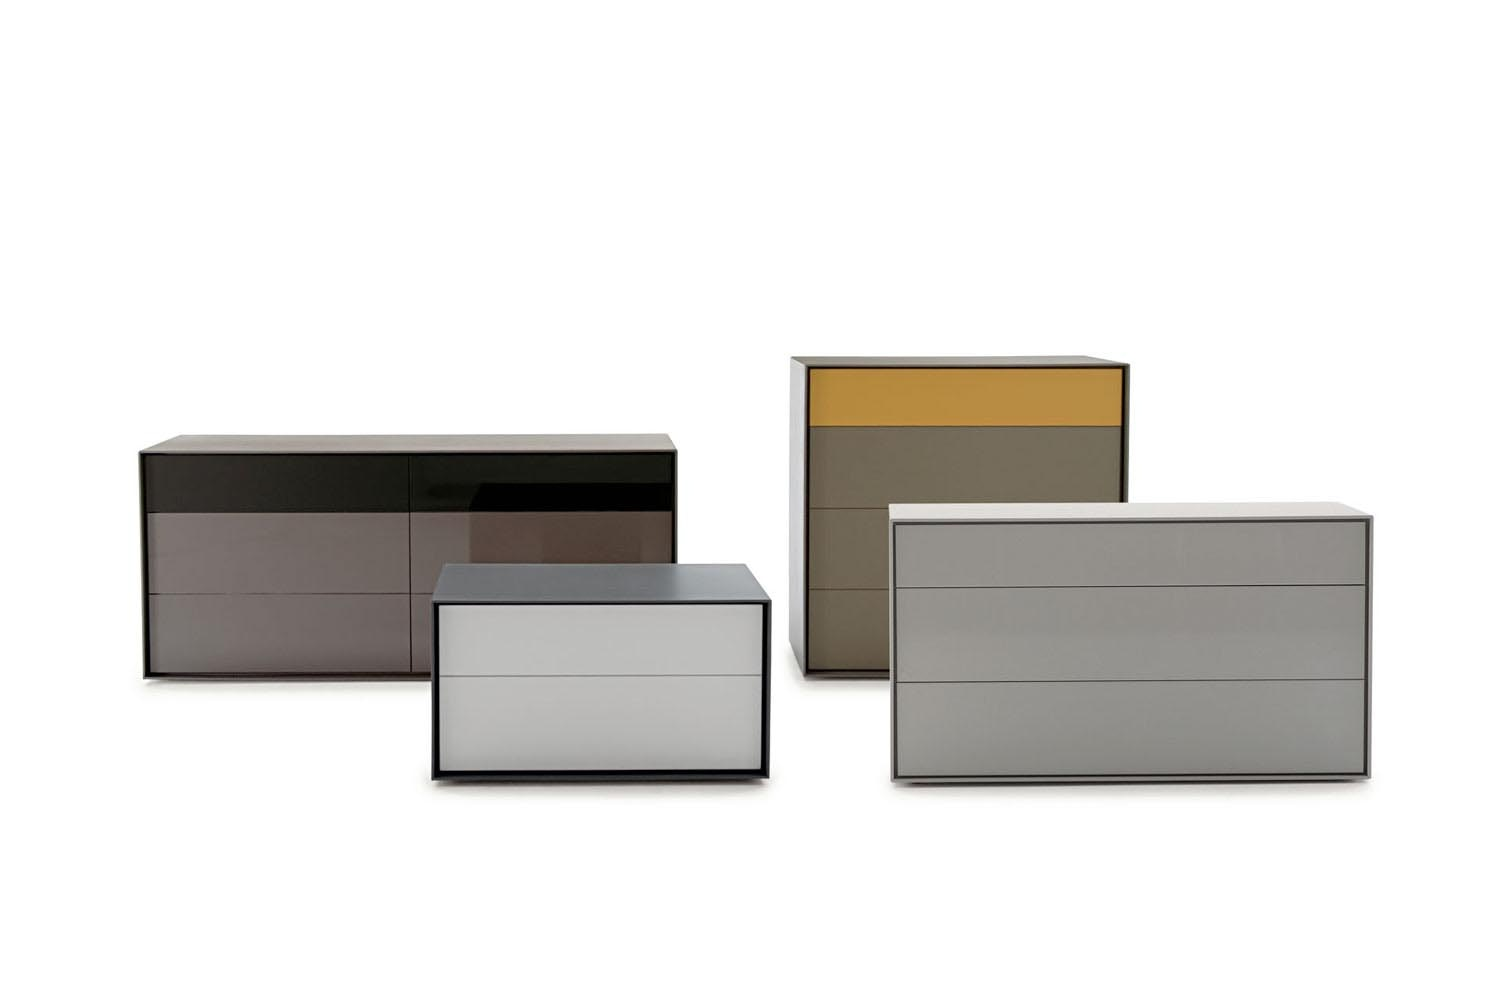 Dado Chest of Drawers by Studio Kairos for B&B Italia